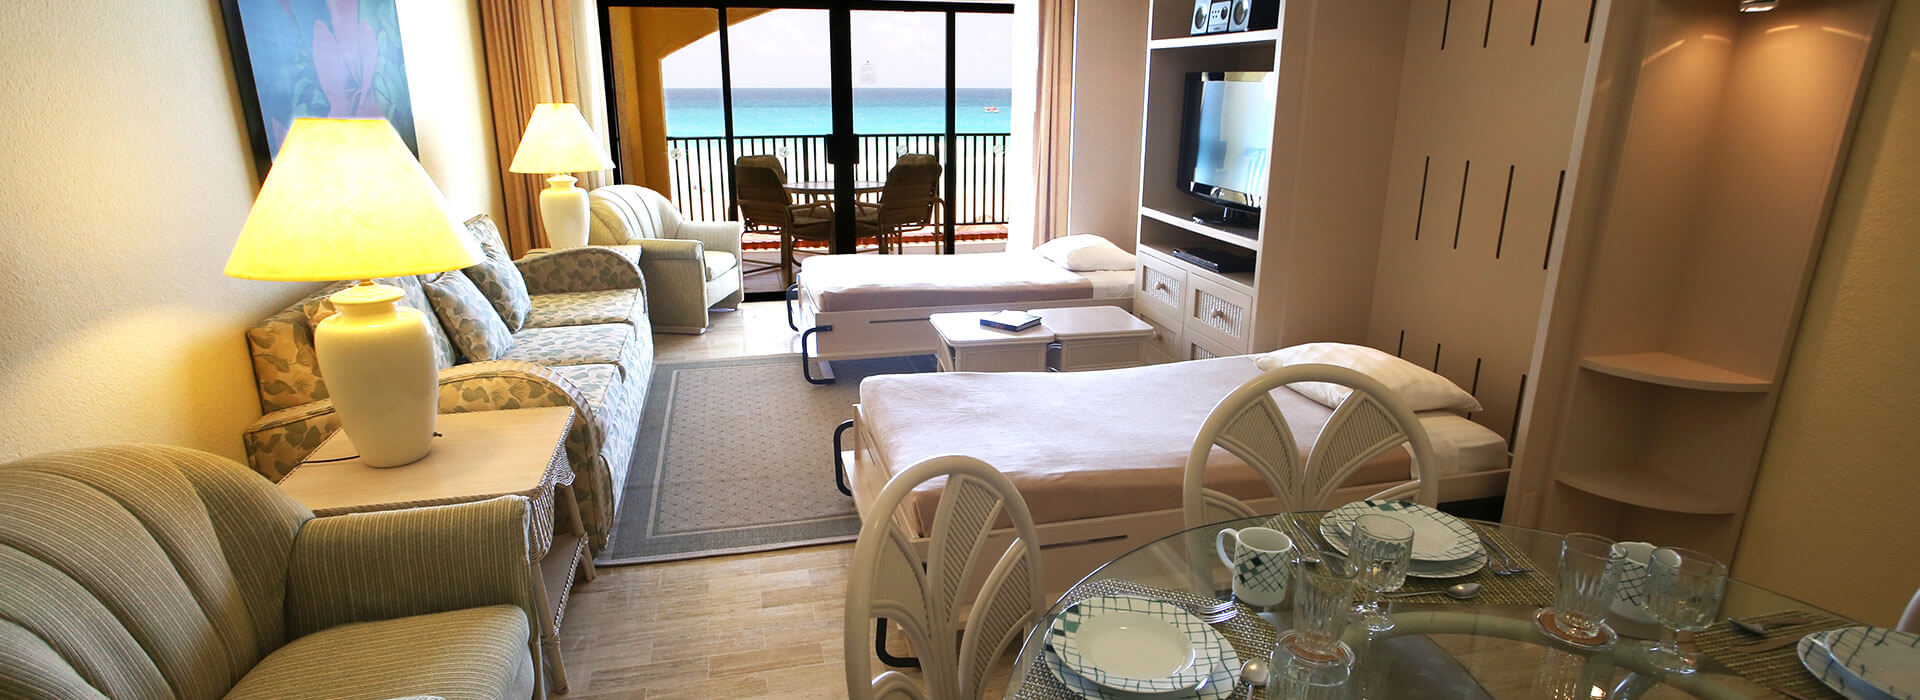 suite in cancun resort with dining and living room